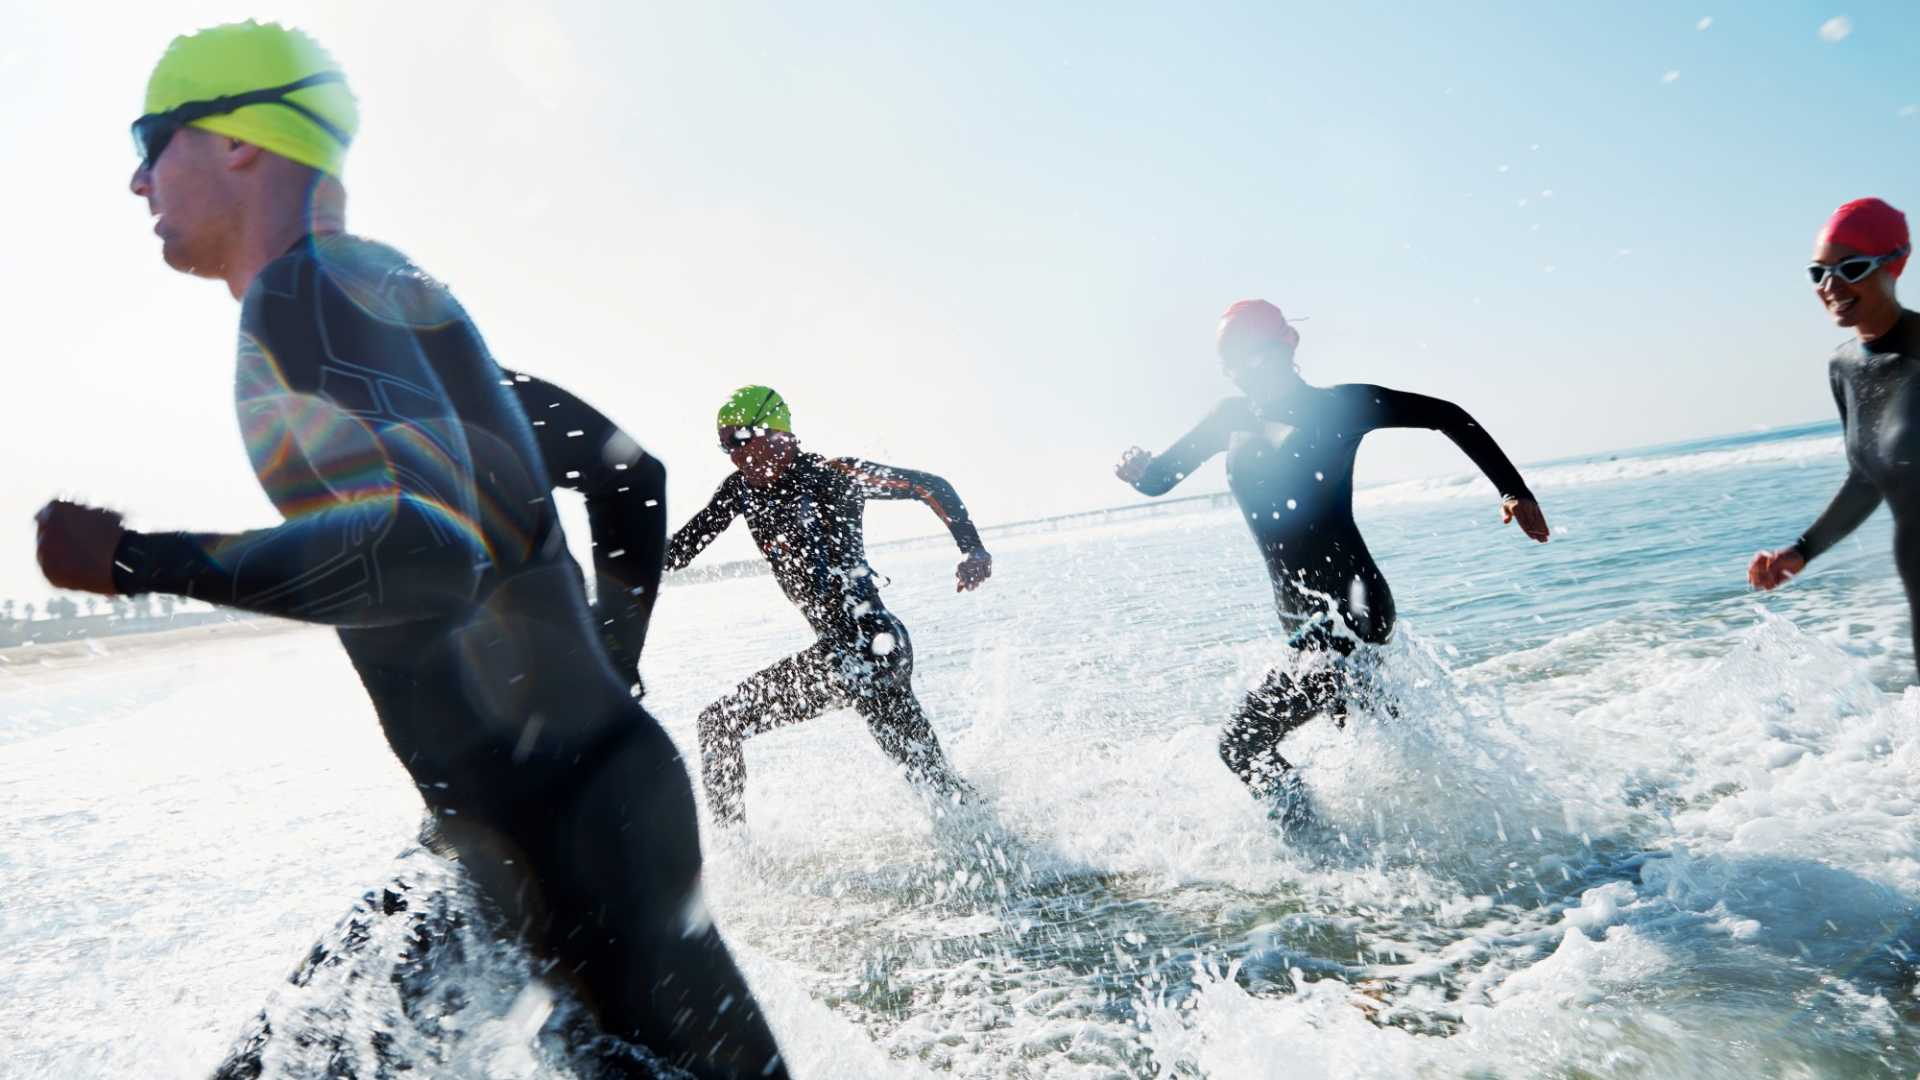 4 Simple Ways to Build Mental Strength, According to an Ironman Champion Who Beat Cancer